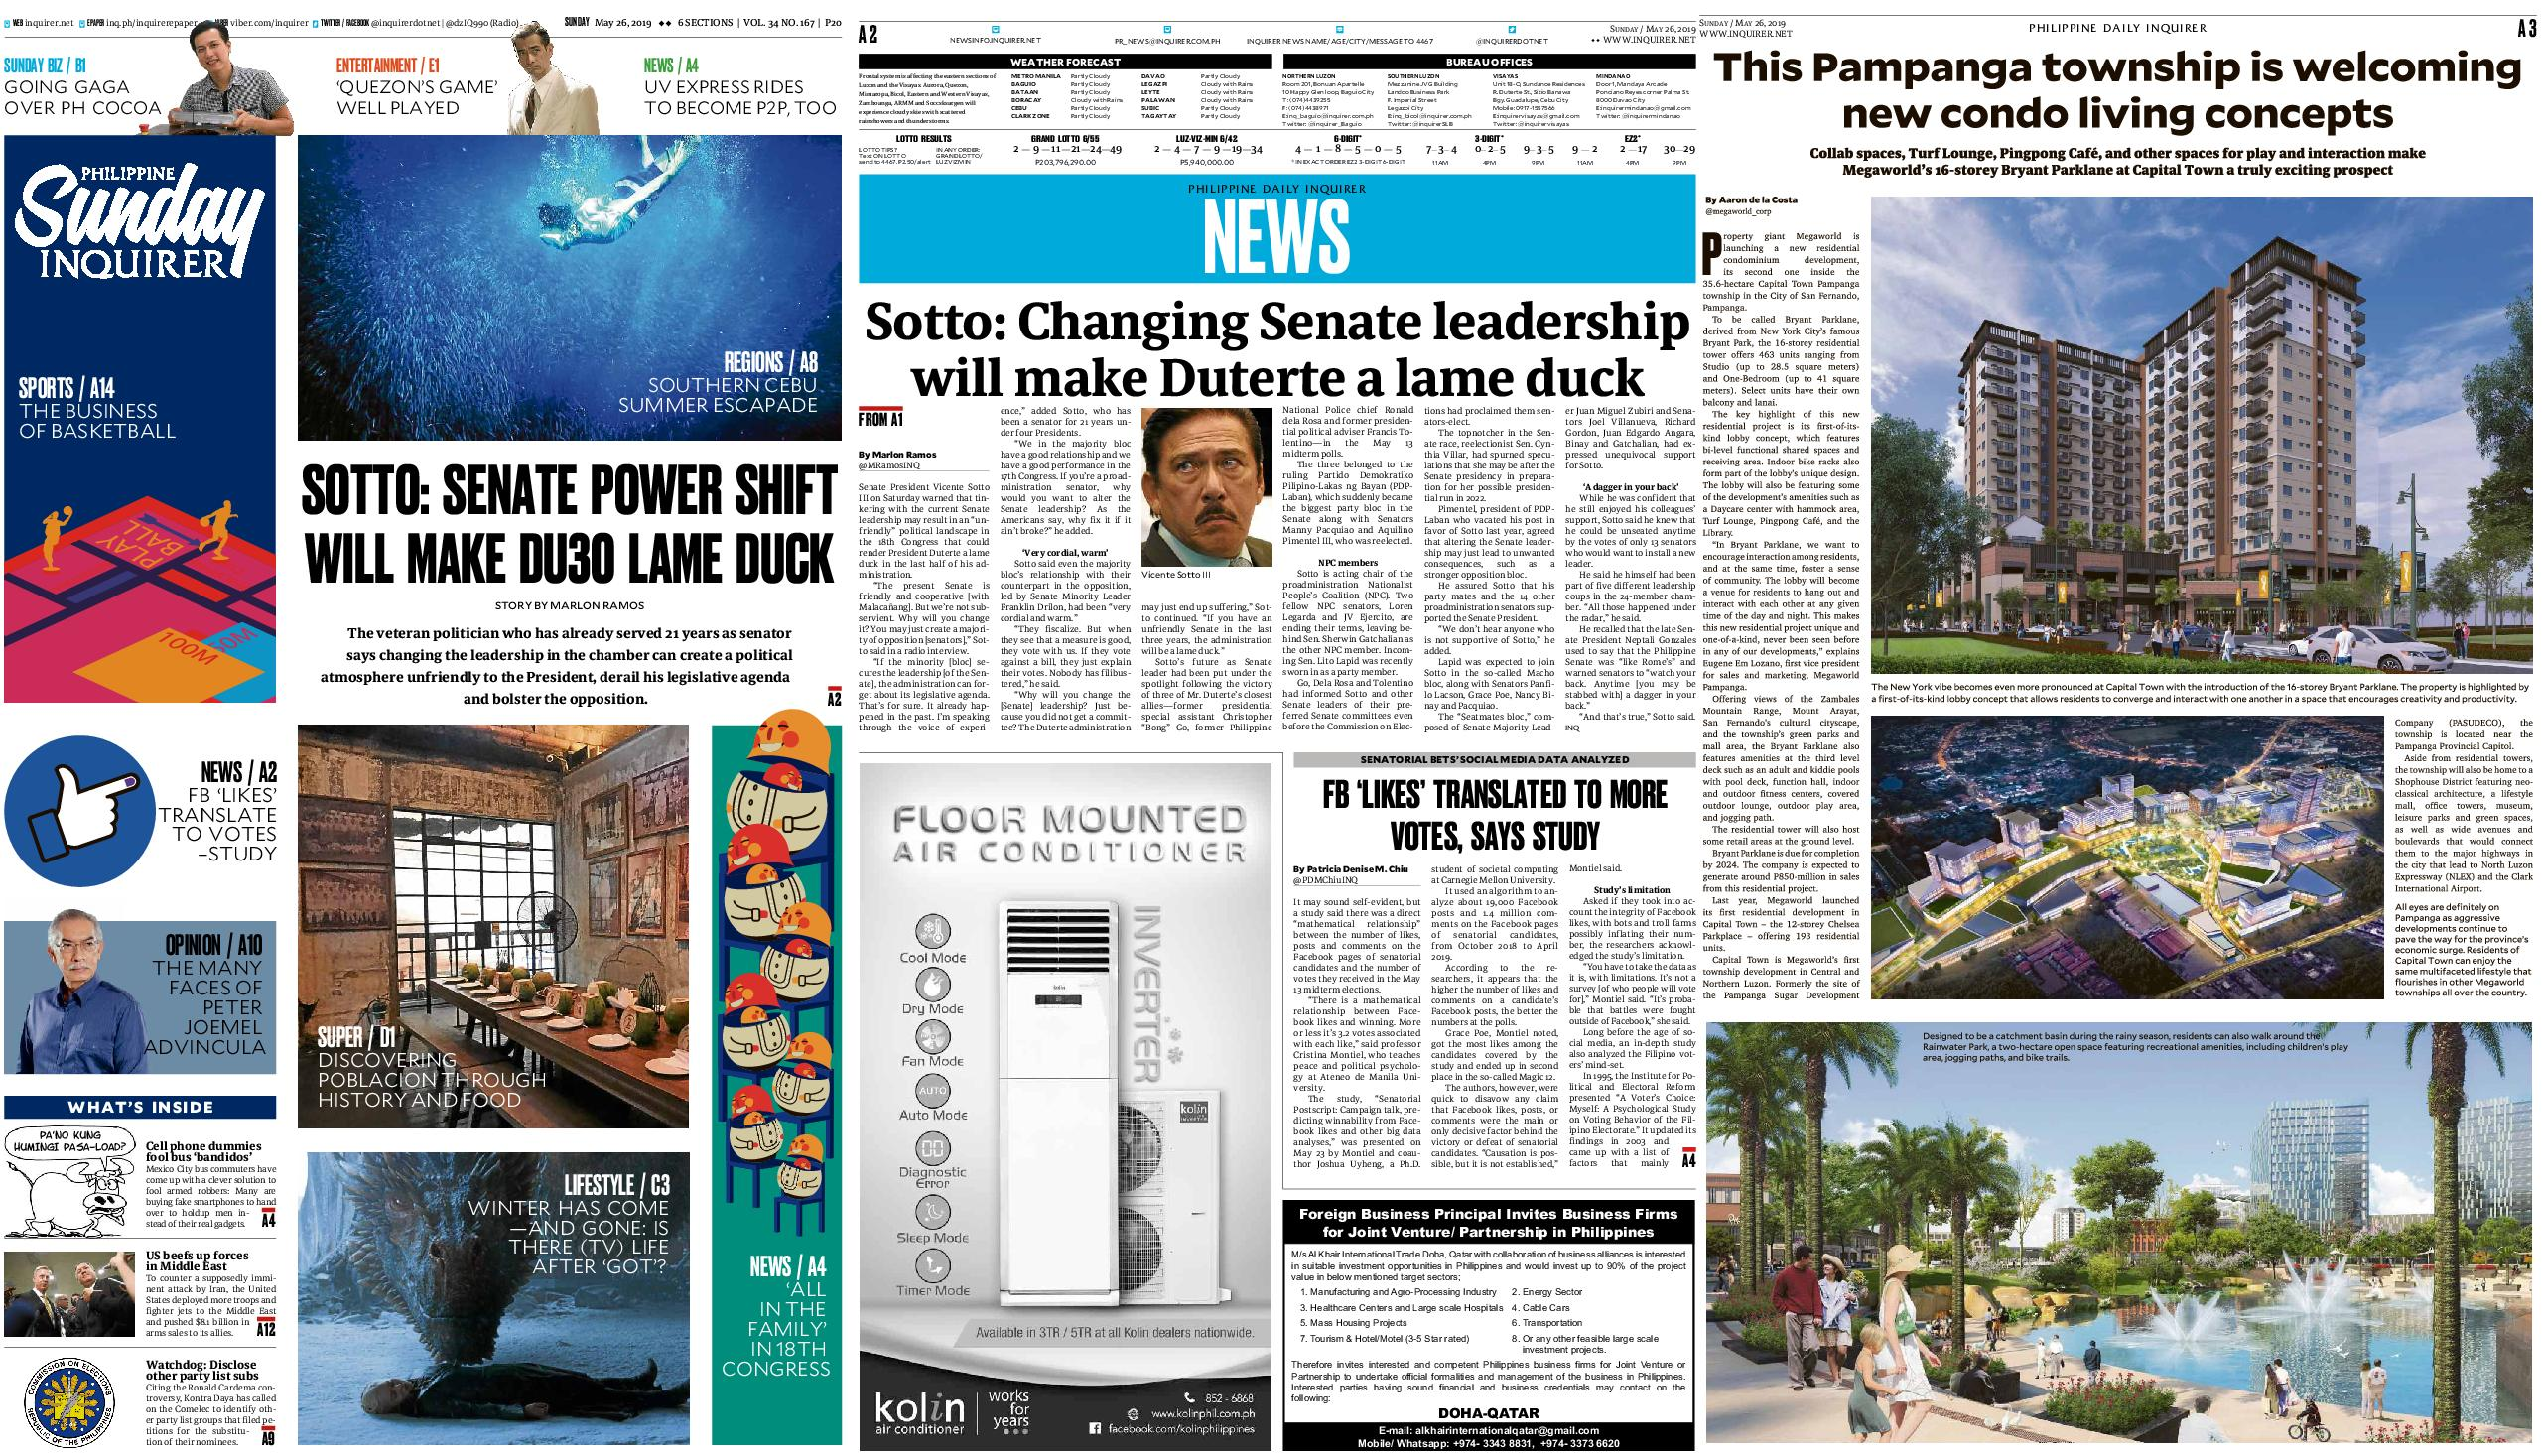 Philippines Daily Inquirer May 17 2017 Pdf Free - Www imagez co